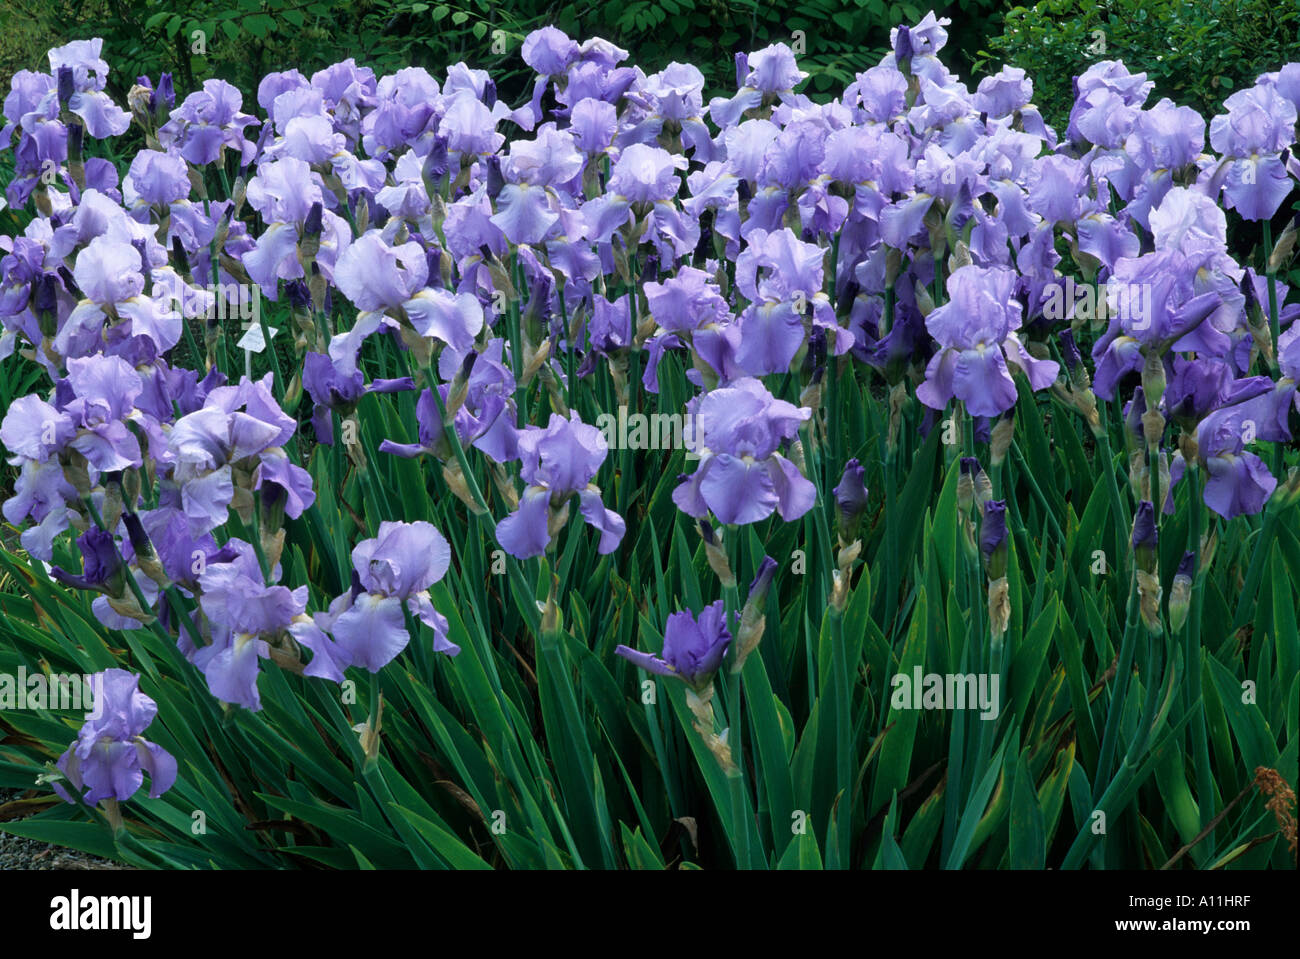 Philips Iris Iris Jane Phillips Blue Flowers Tall Bearded Fragrant Garden